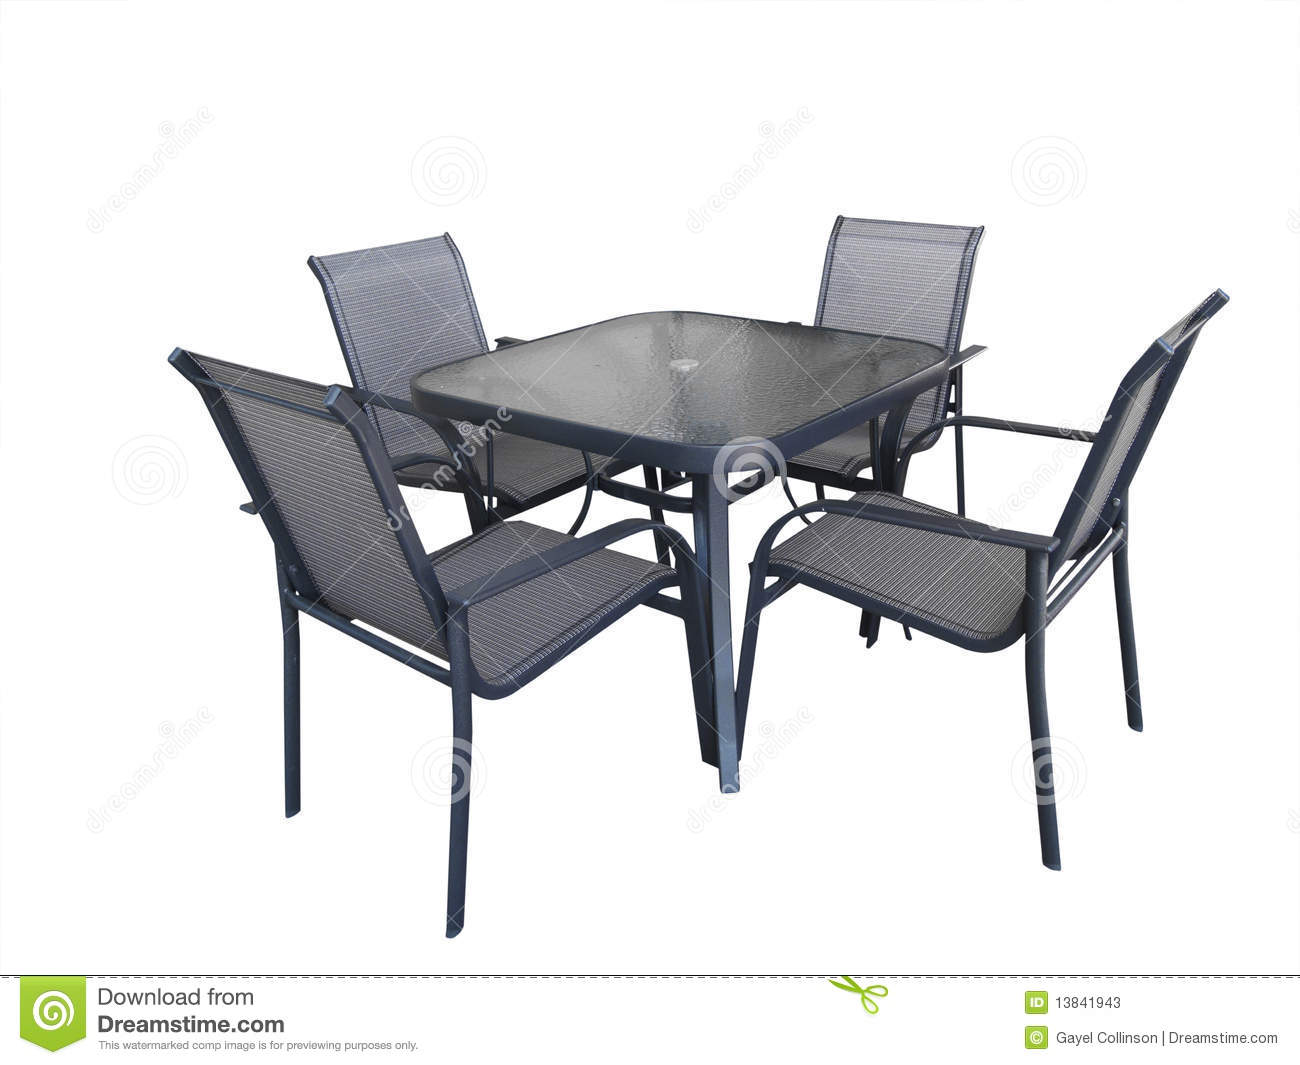 Cafe tables and chairs png - Glass Table And Chairs For Outdoor Isolated With Clipping Path Glass Table And Chairs For Outdoor Isolated With Clipping Path Download